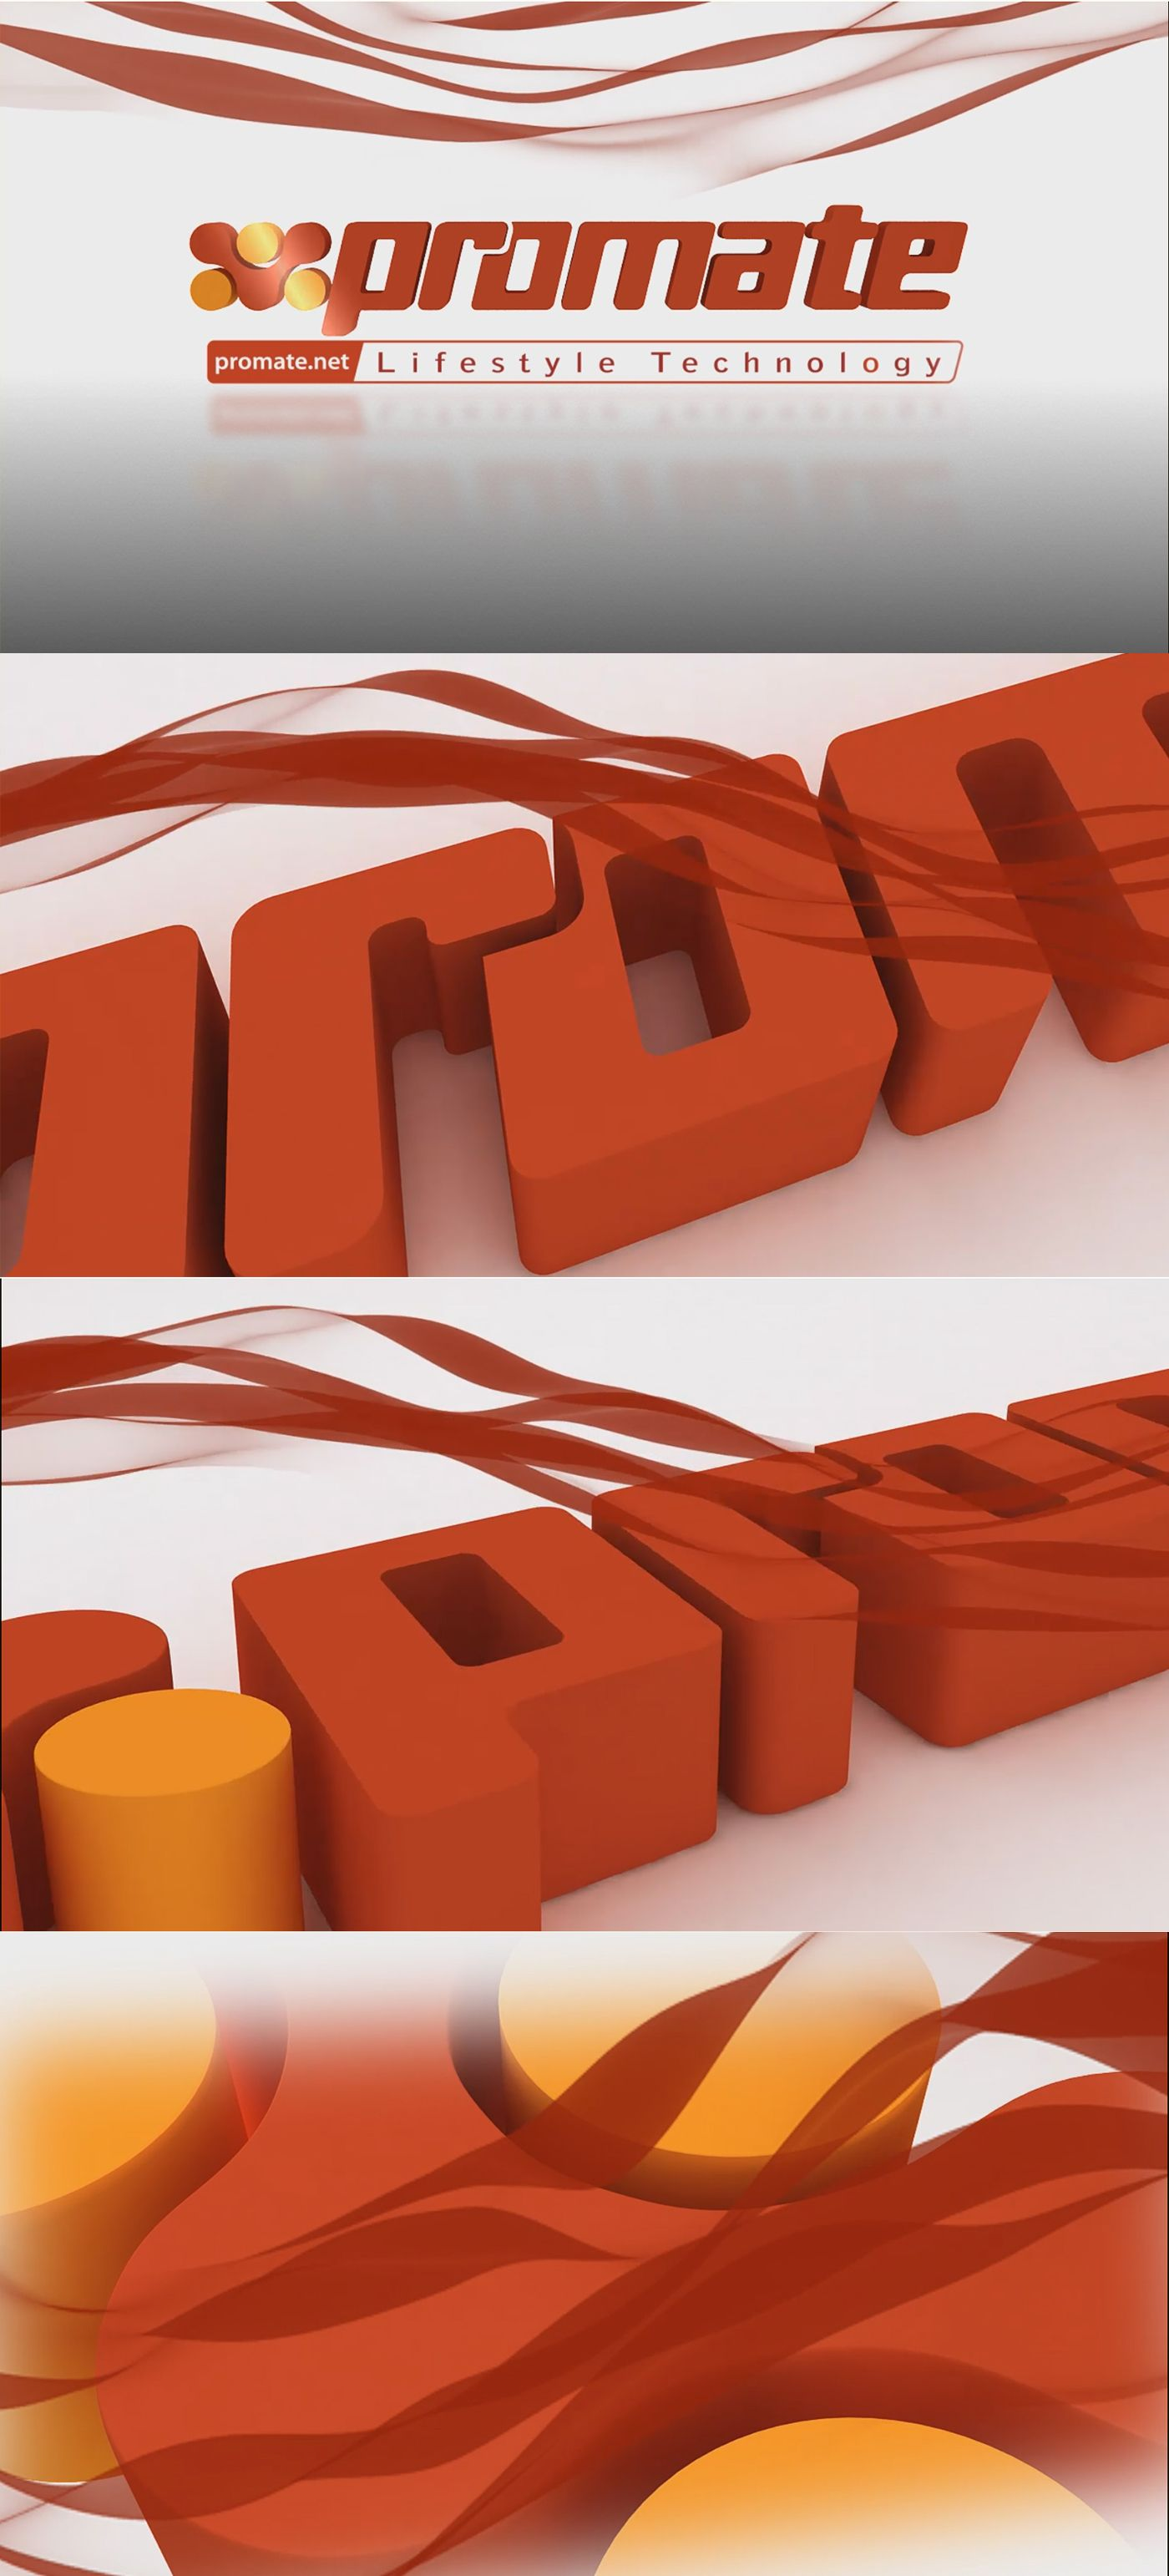 Promate Logo Animation Tools 3D Studio Max Adobe After